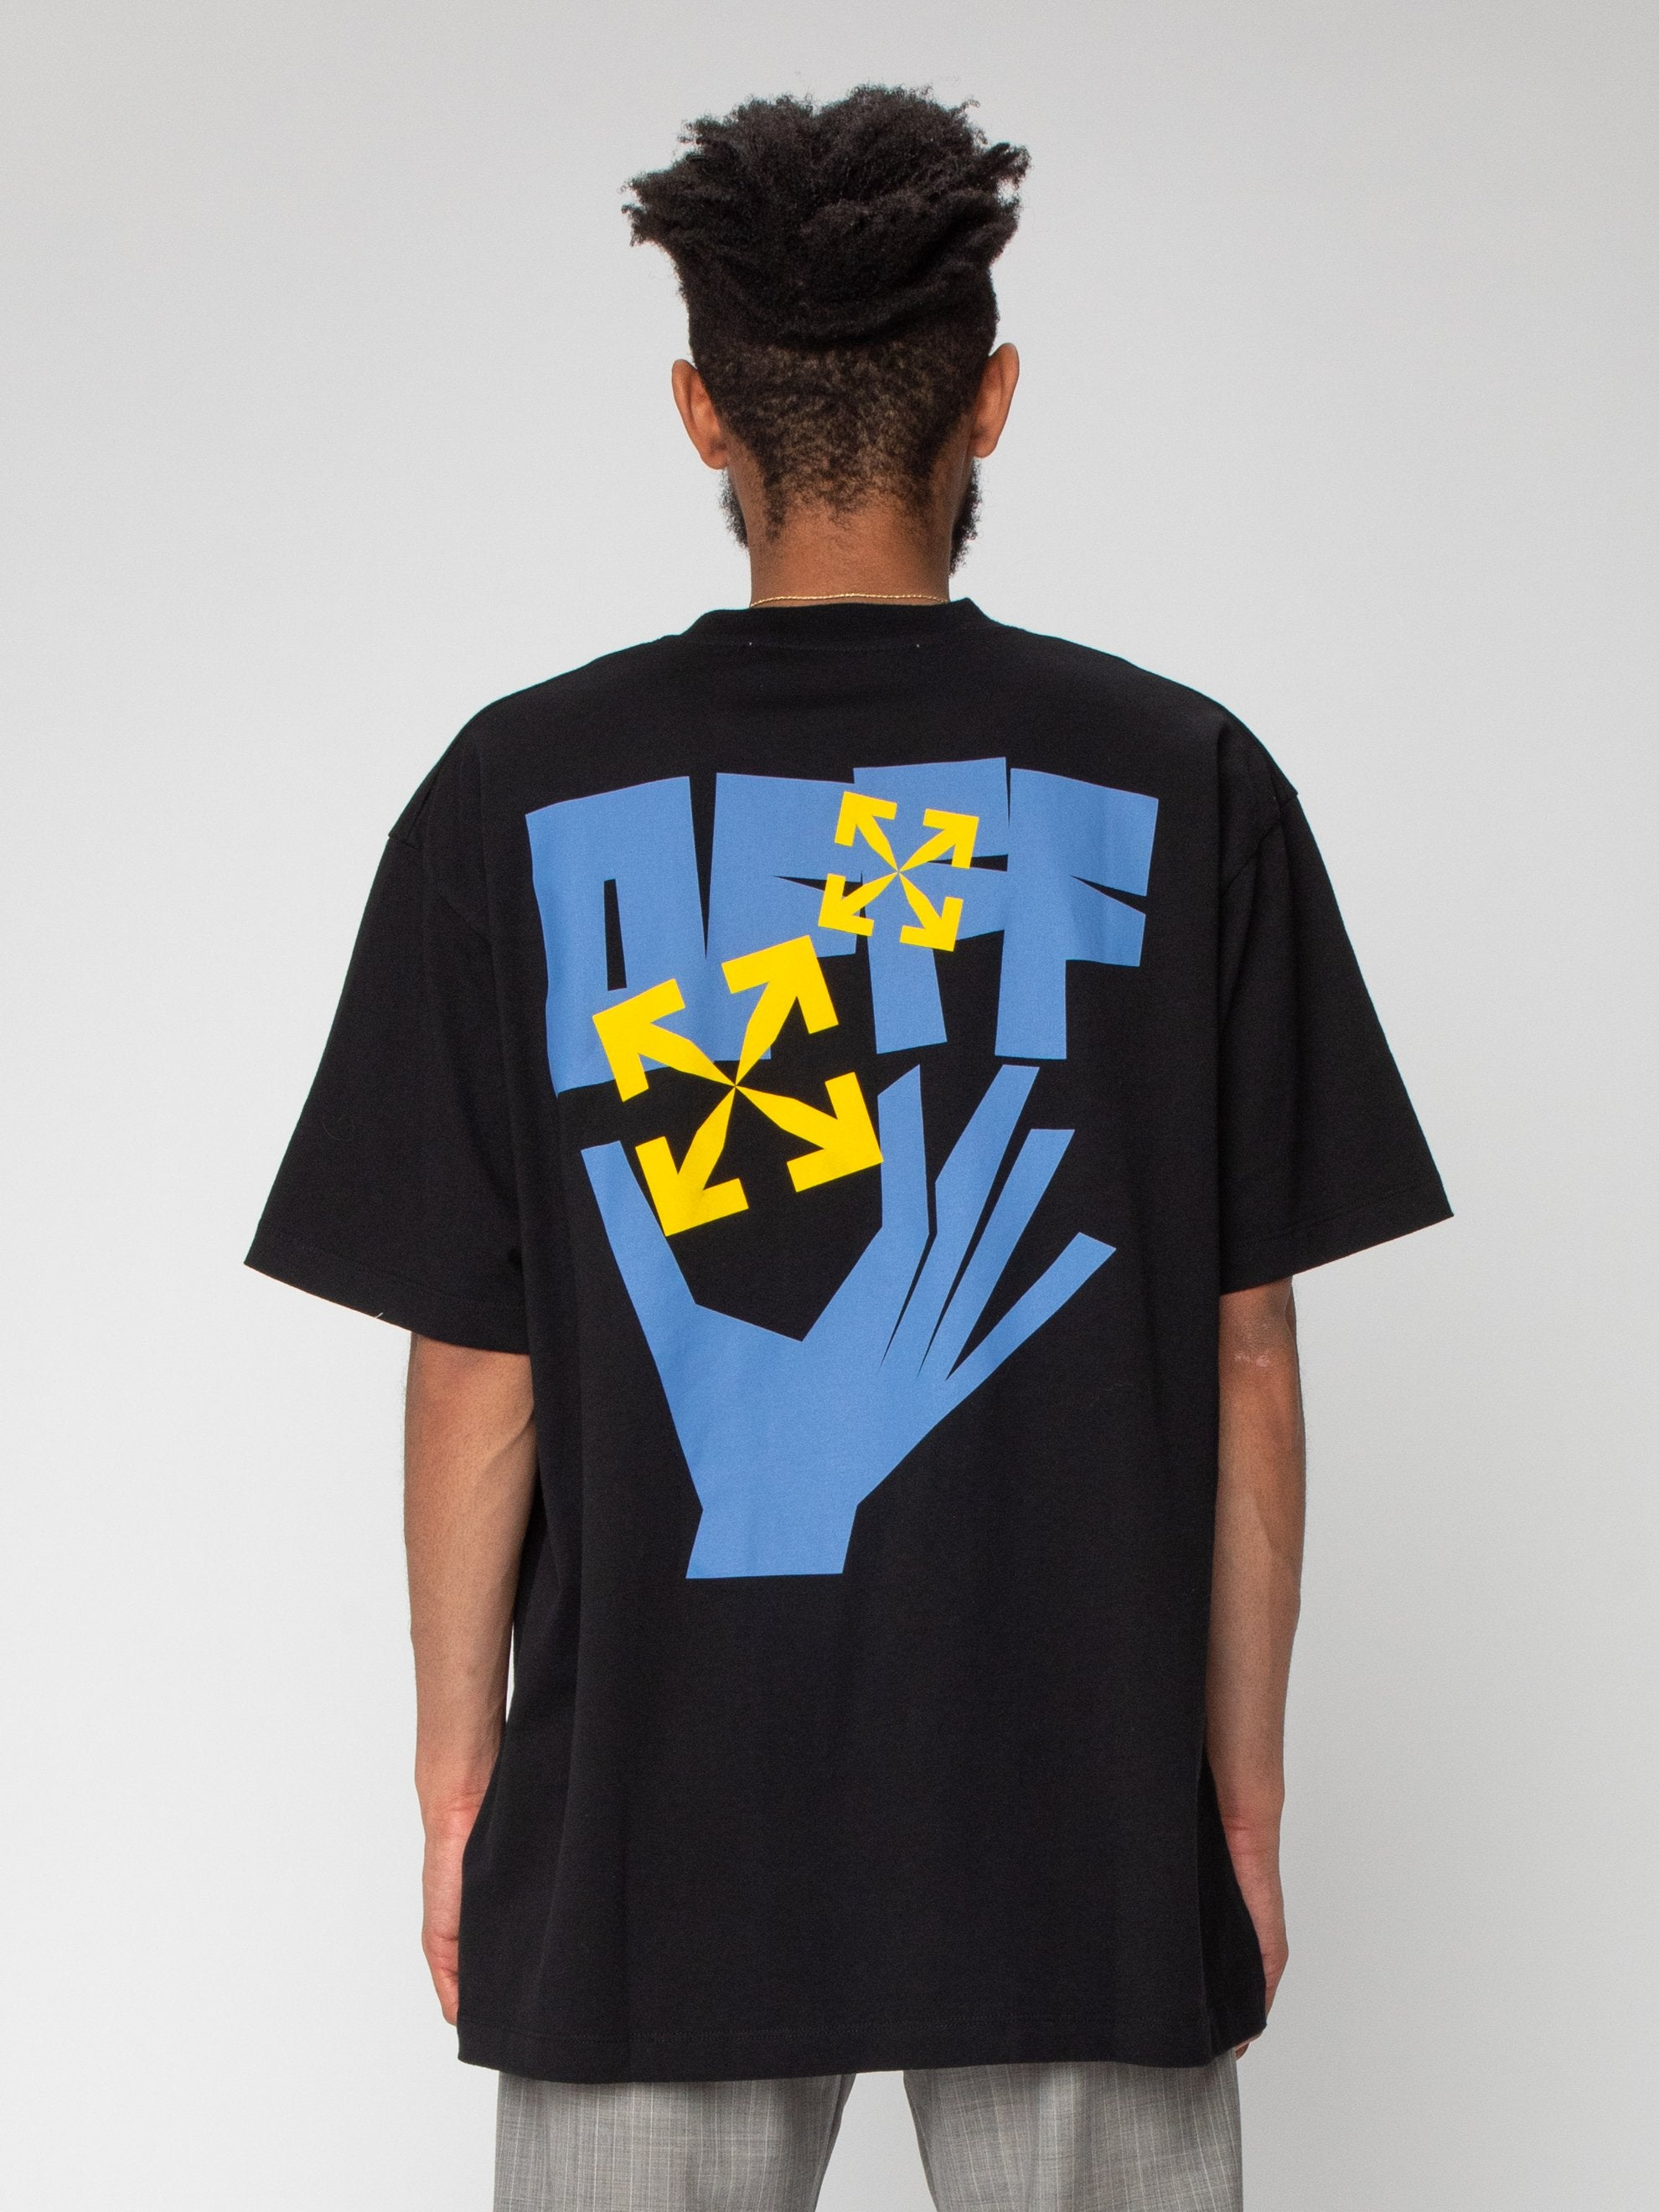 Hands Arrows S/S Tee